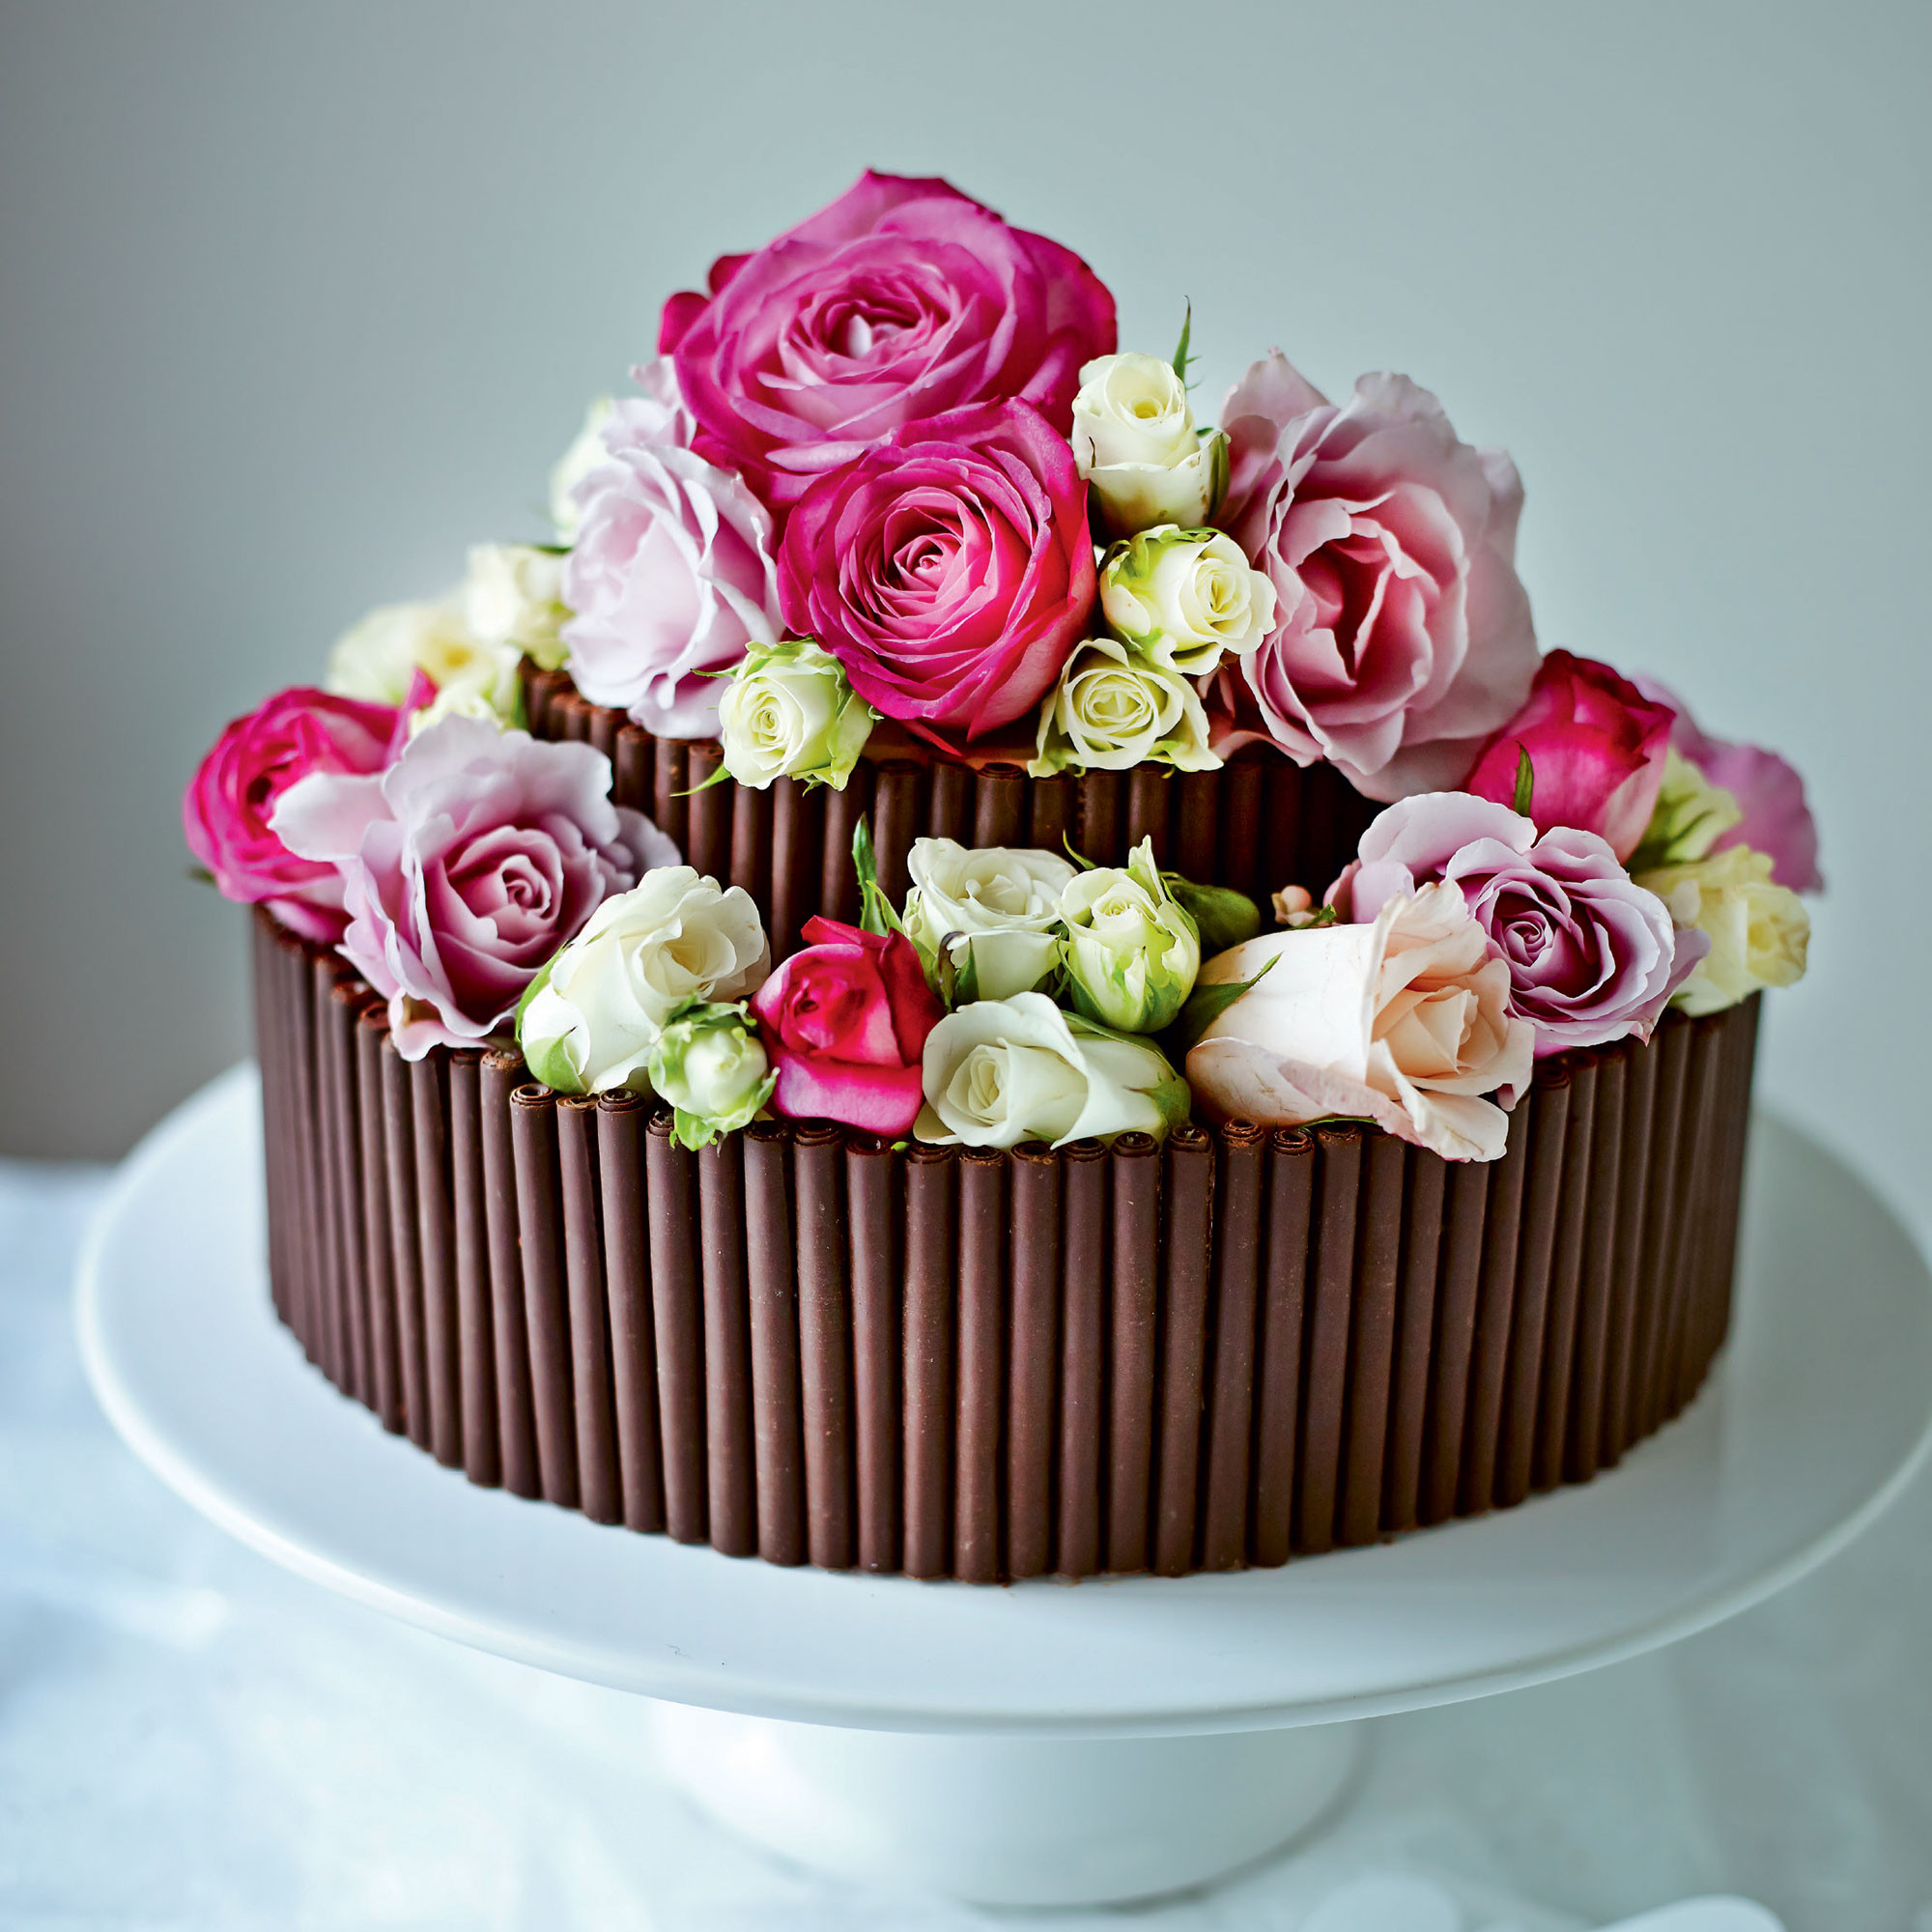 Wedding Cake Recipes  Jo Wheatley s Rose and Chocolate Wedding Cake Woman And Home